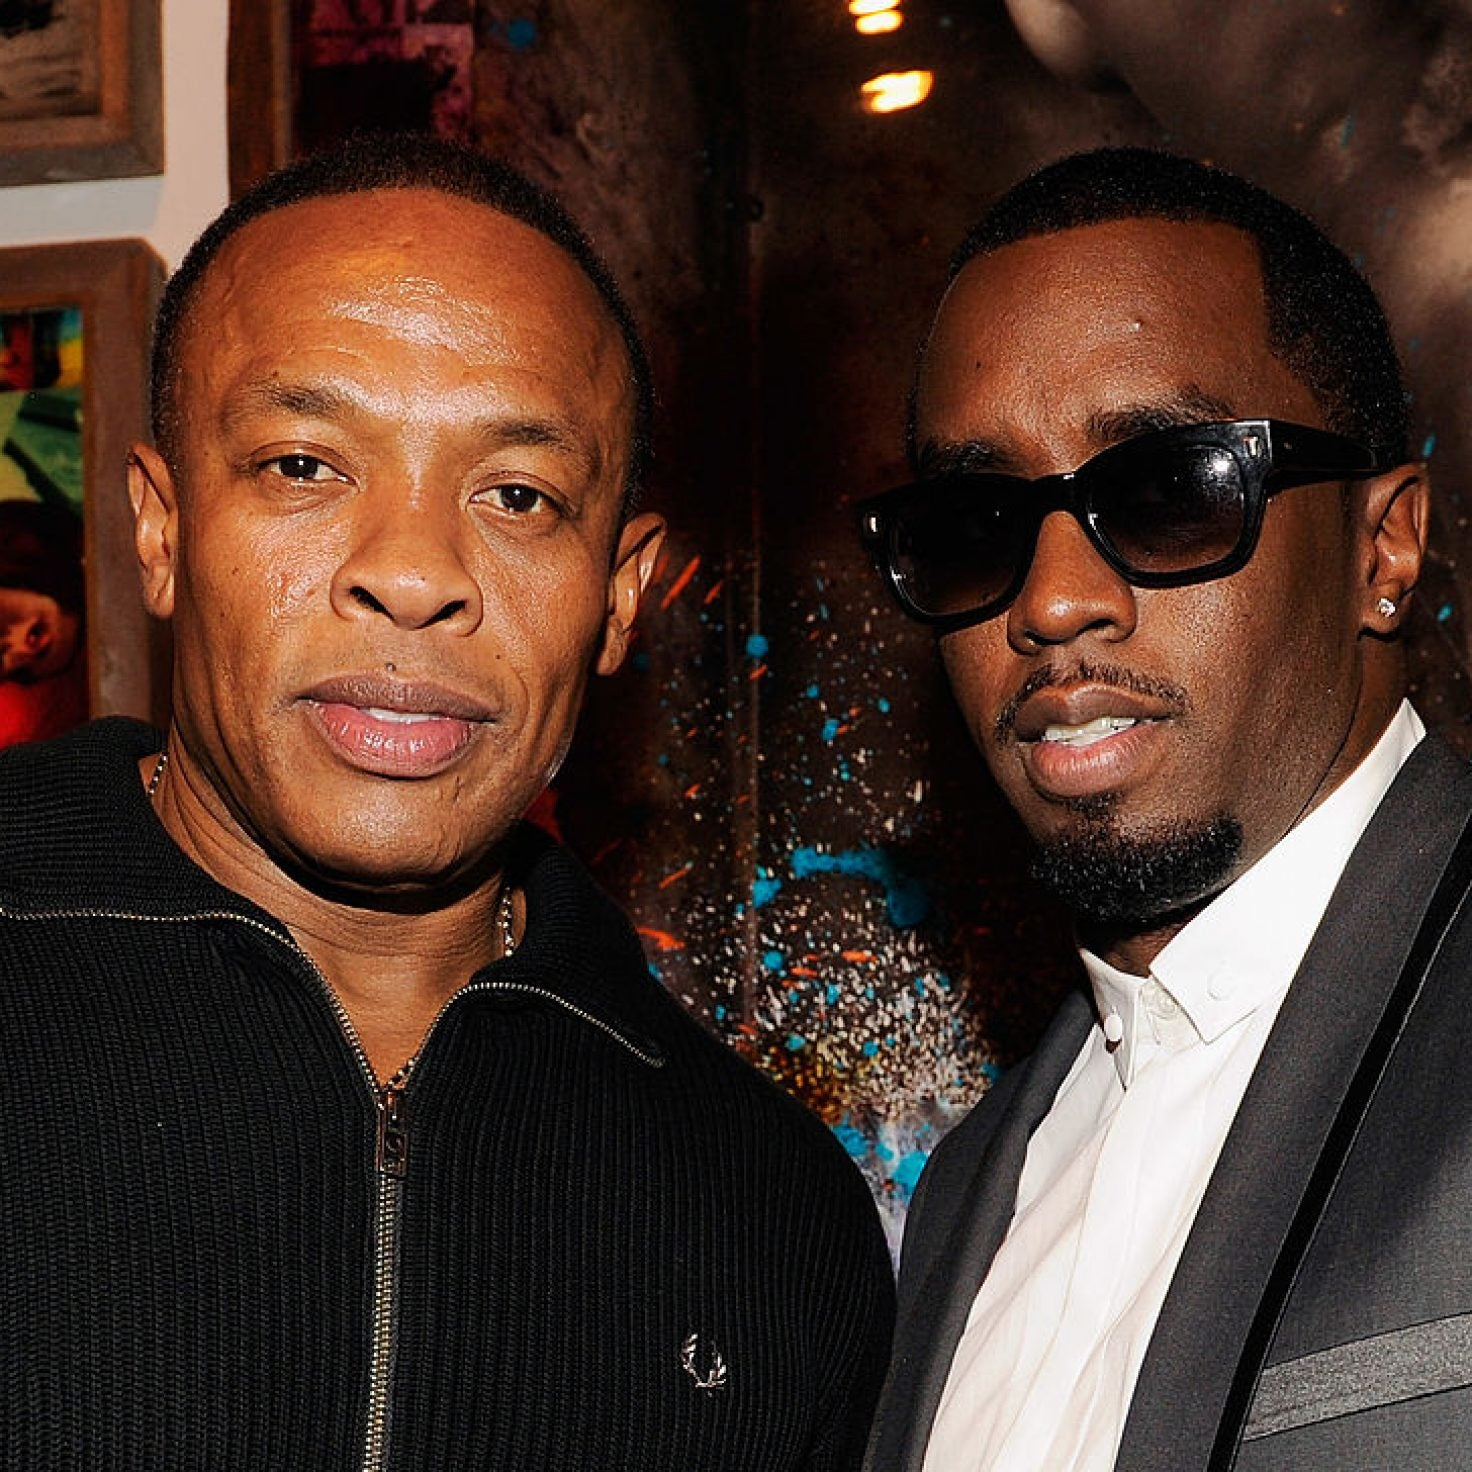 Swizz Beatz and Timbaland Call Diddy And Dr. Dre To The Stage For The Next Battle